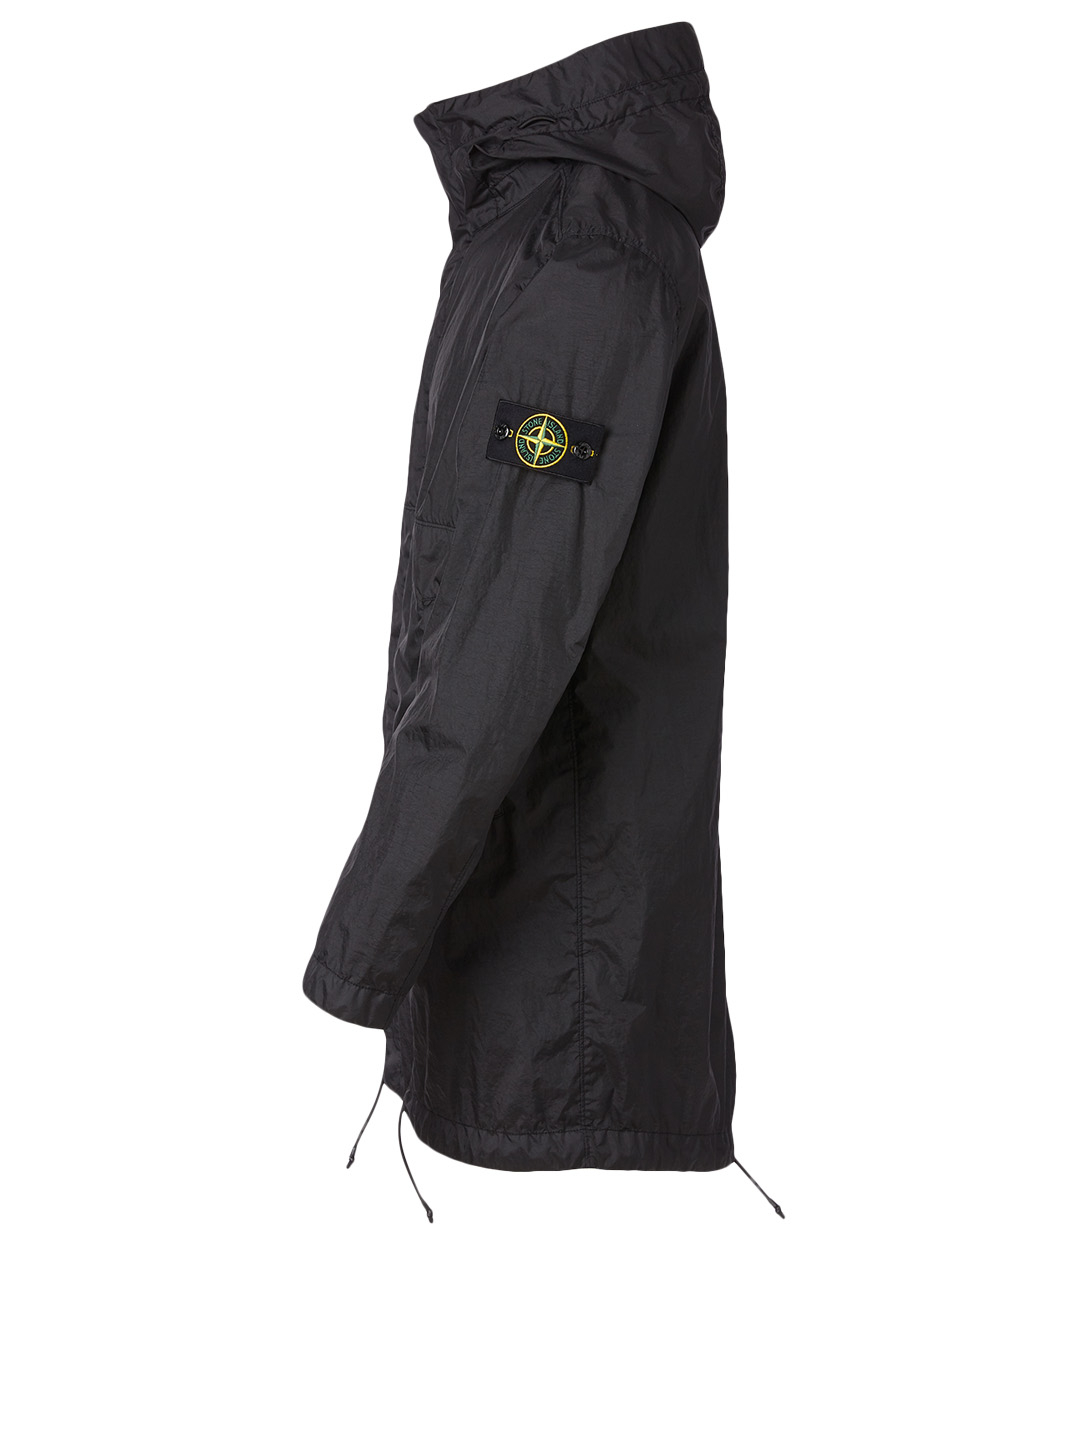 STONE ISLAND Membrana Fishtail Coat Men's Black